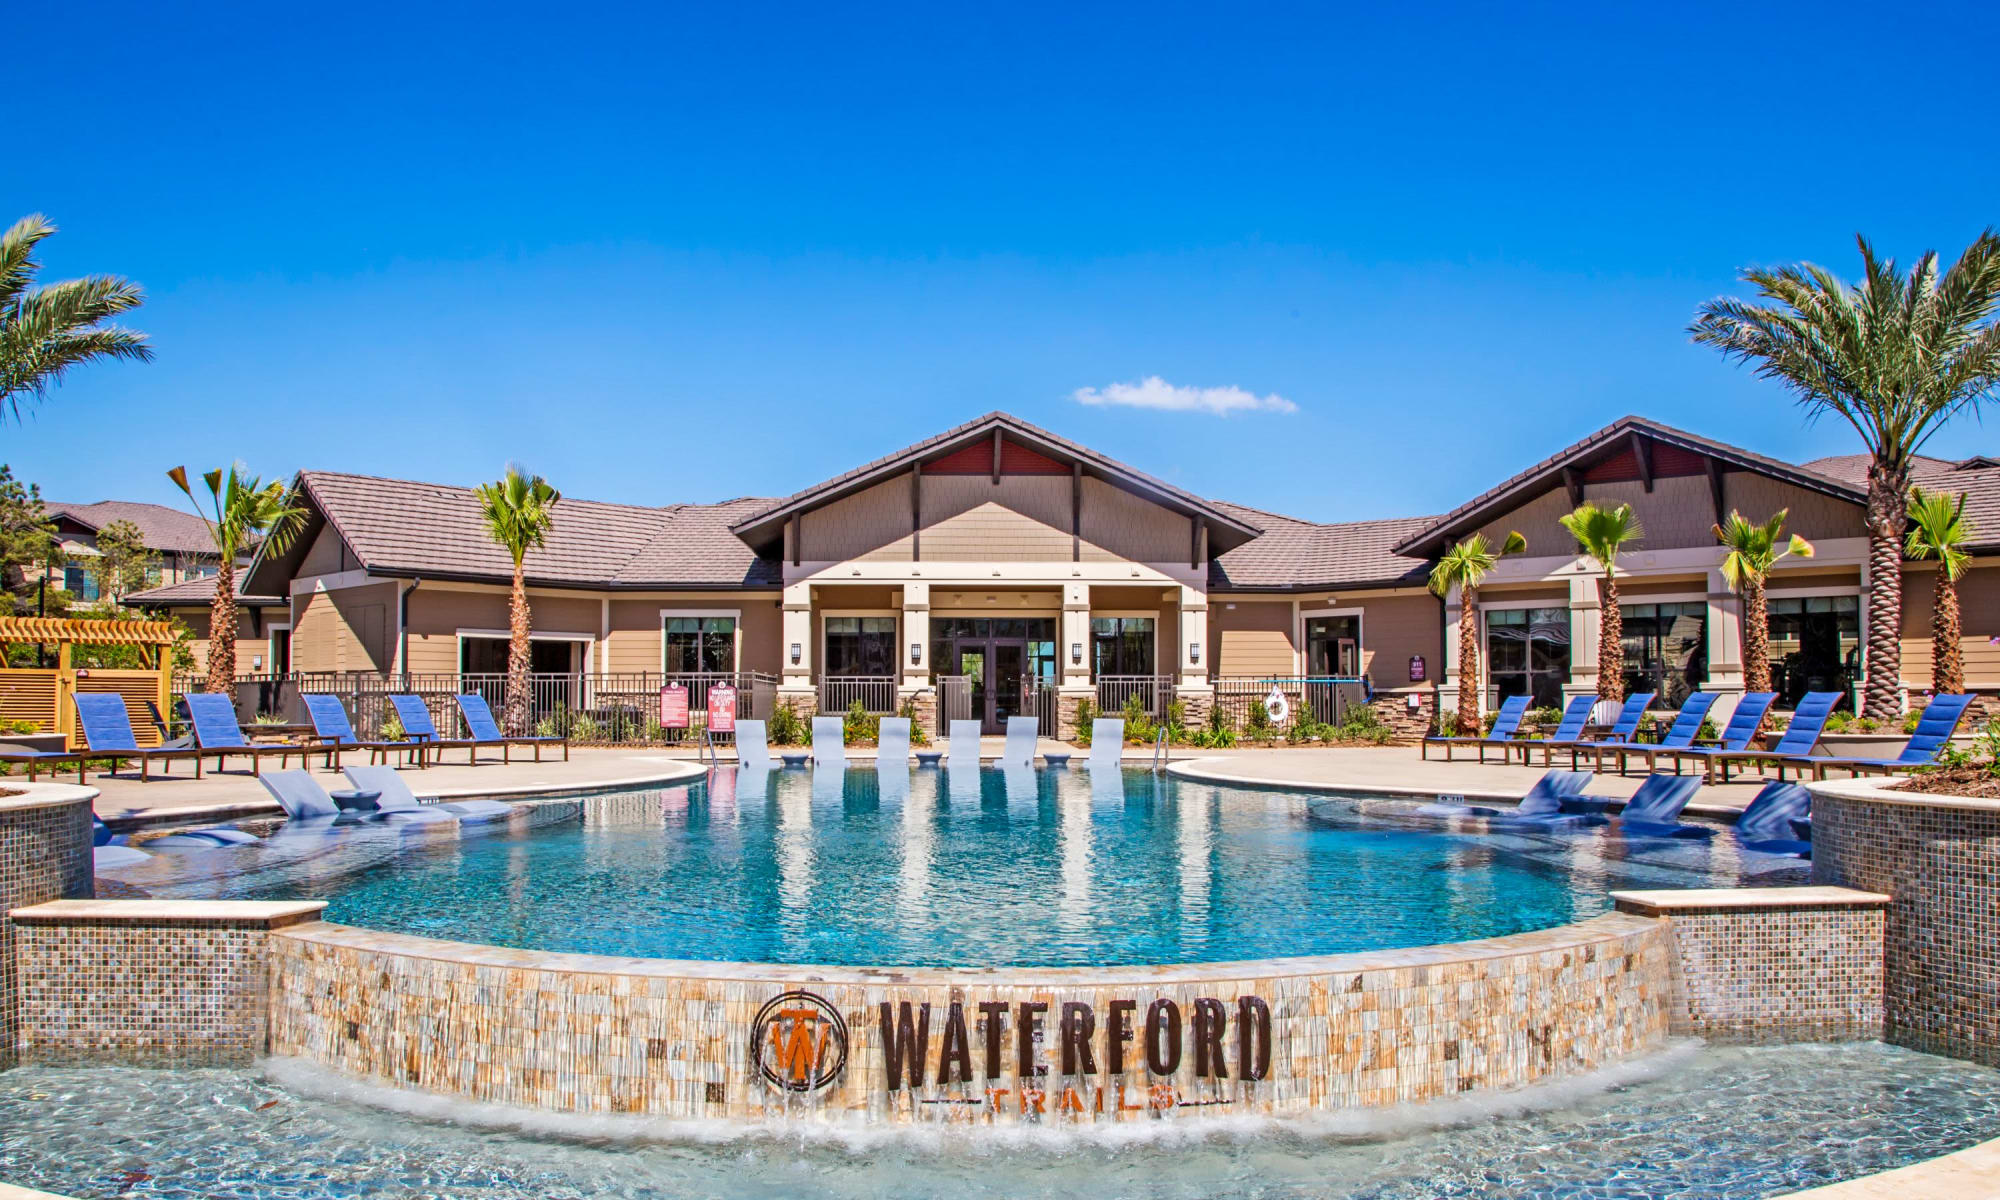 Apply to live at Waterford Trails in Spring, Texas